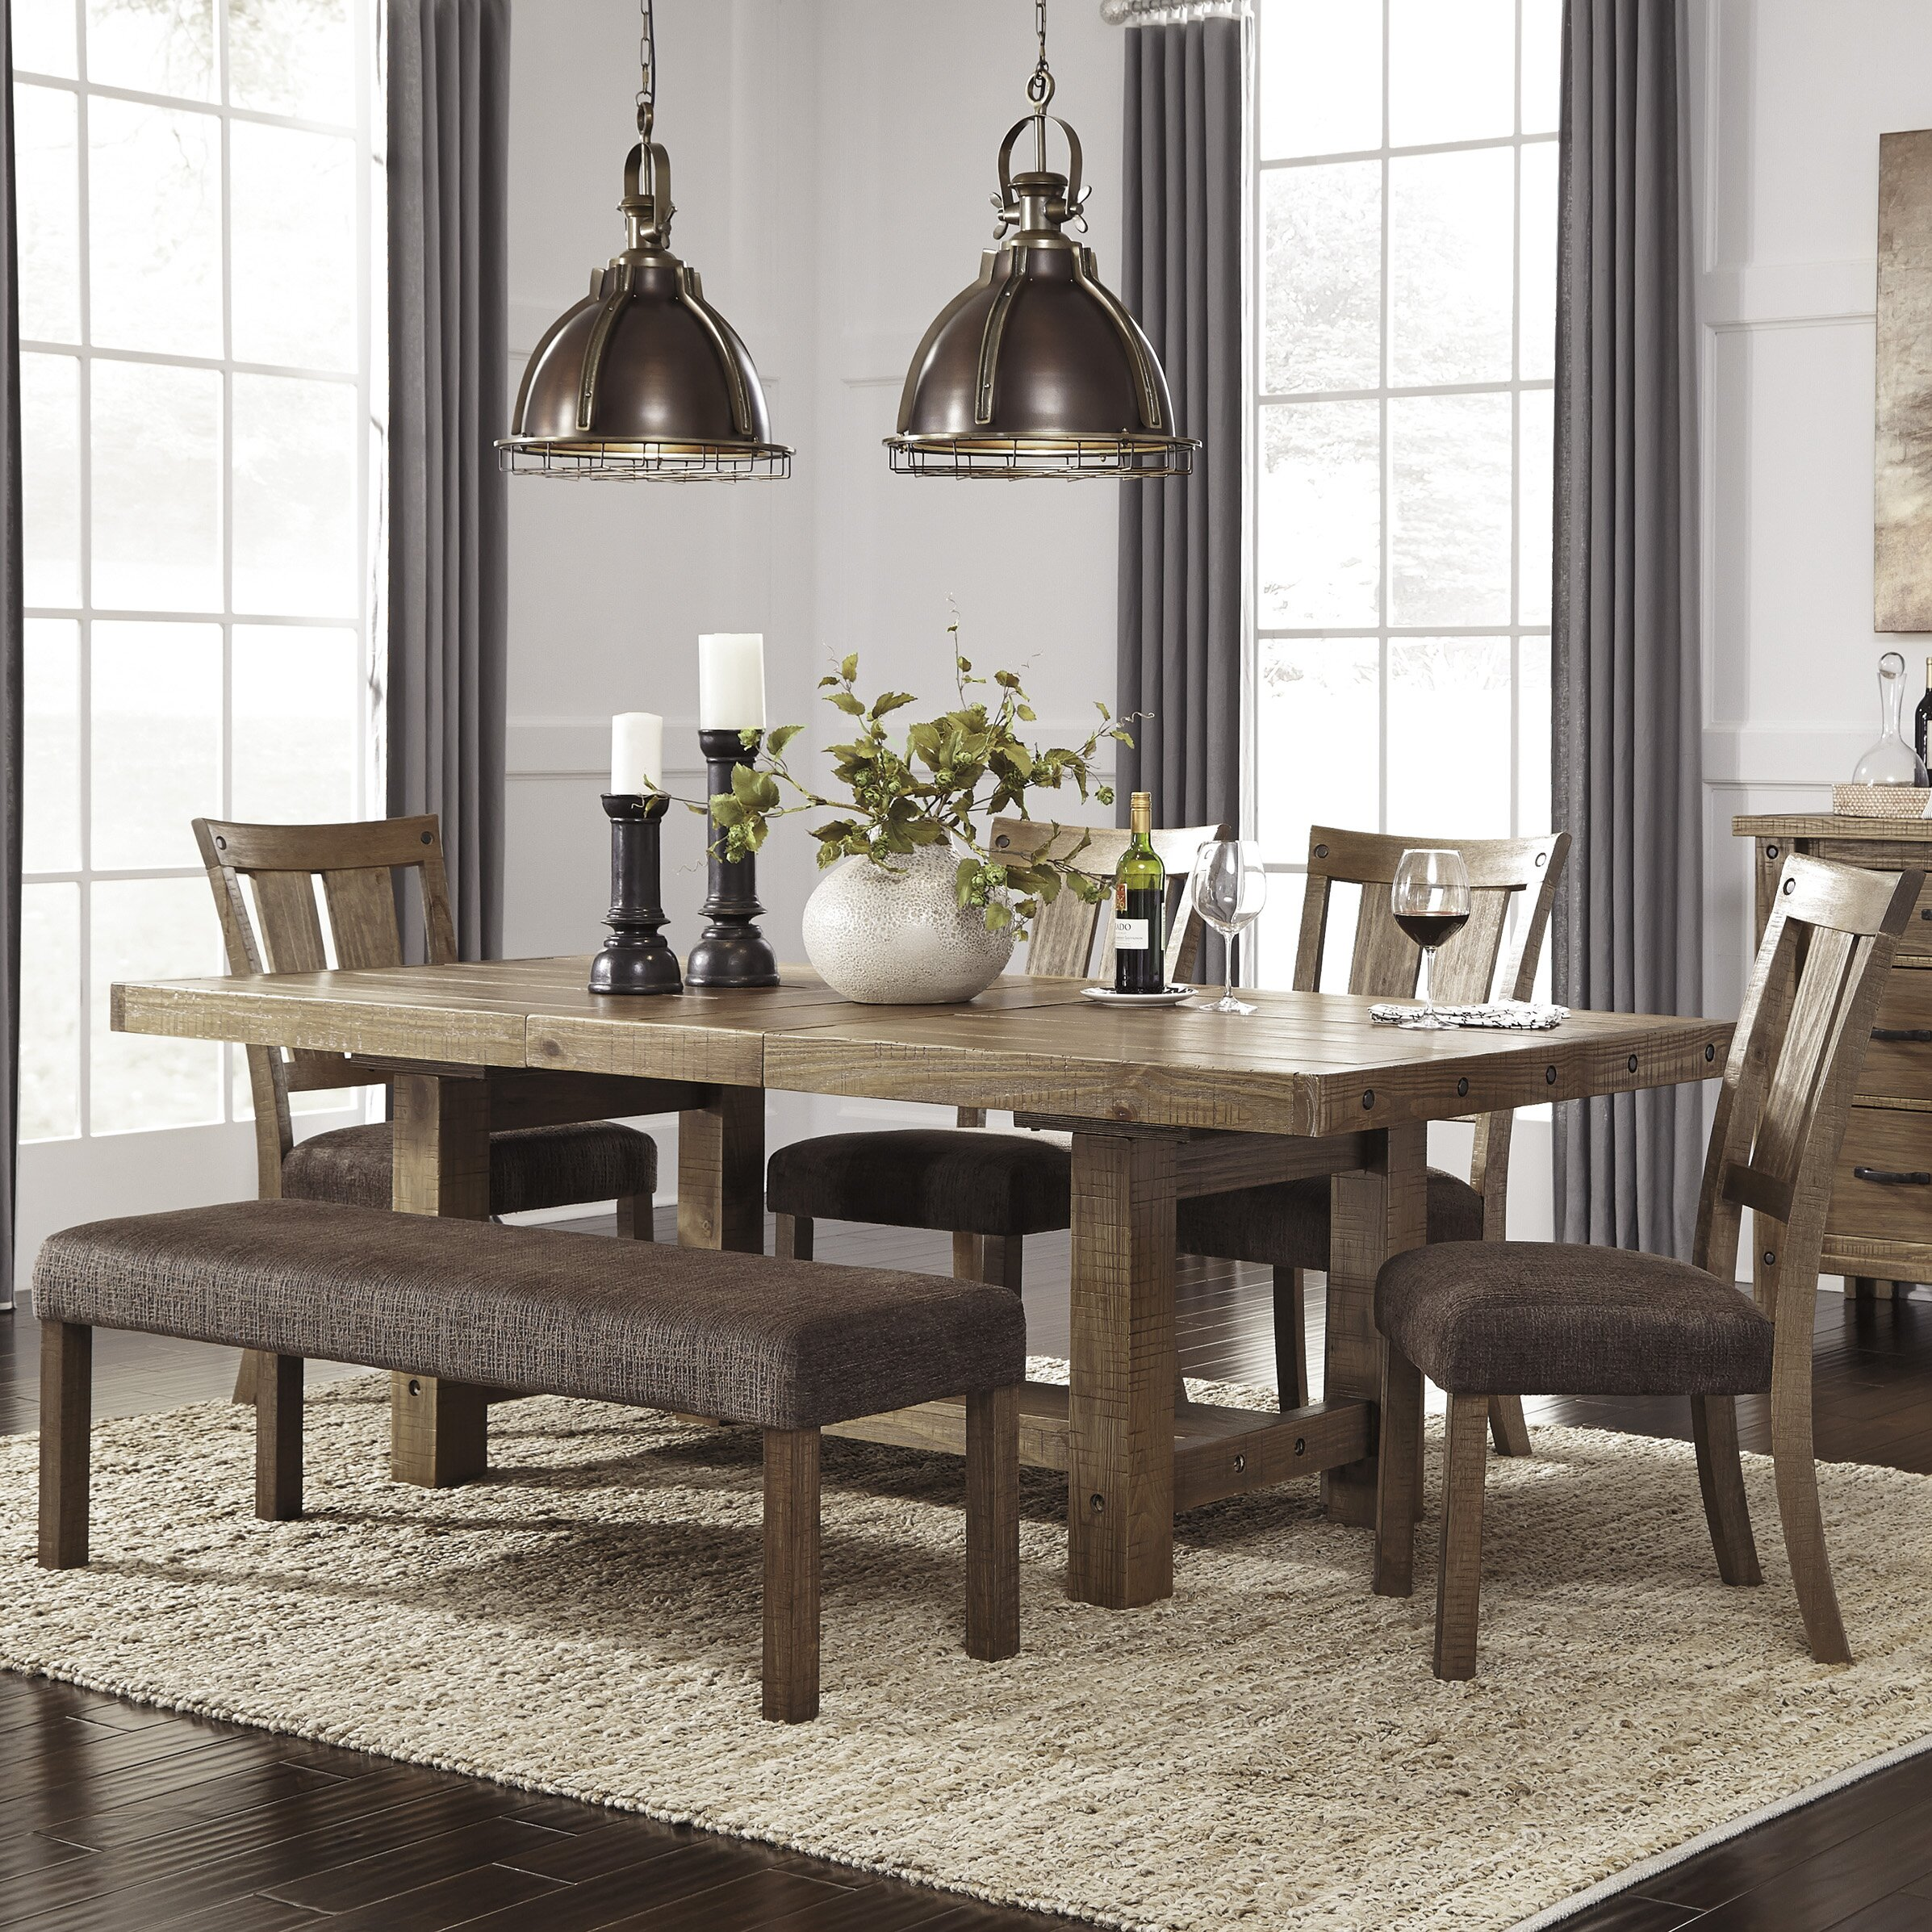 Signature design by ashley 9 piece dining set reviews for Pictures of dining room sets